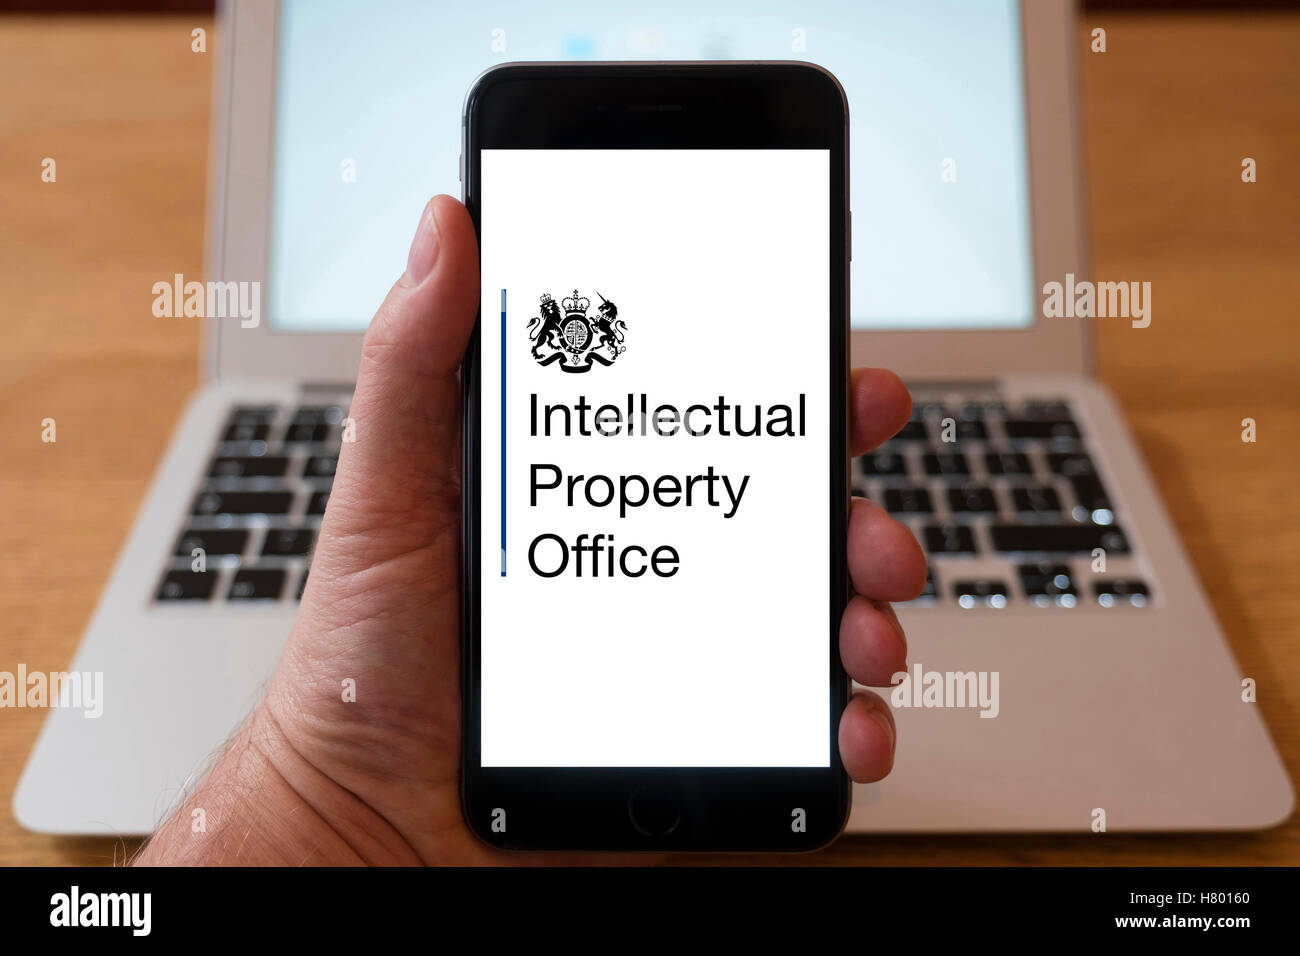 Using iPhone smartphone to display logo of UK Intellectual Property Office - Stock Image